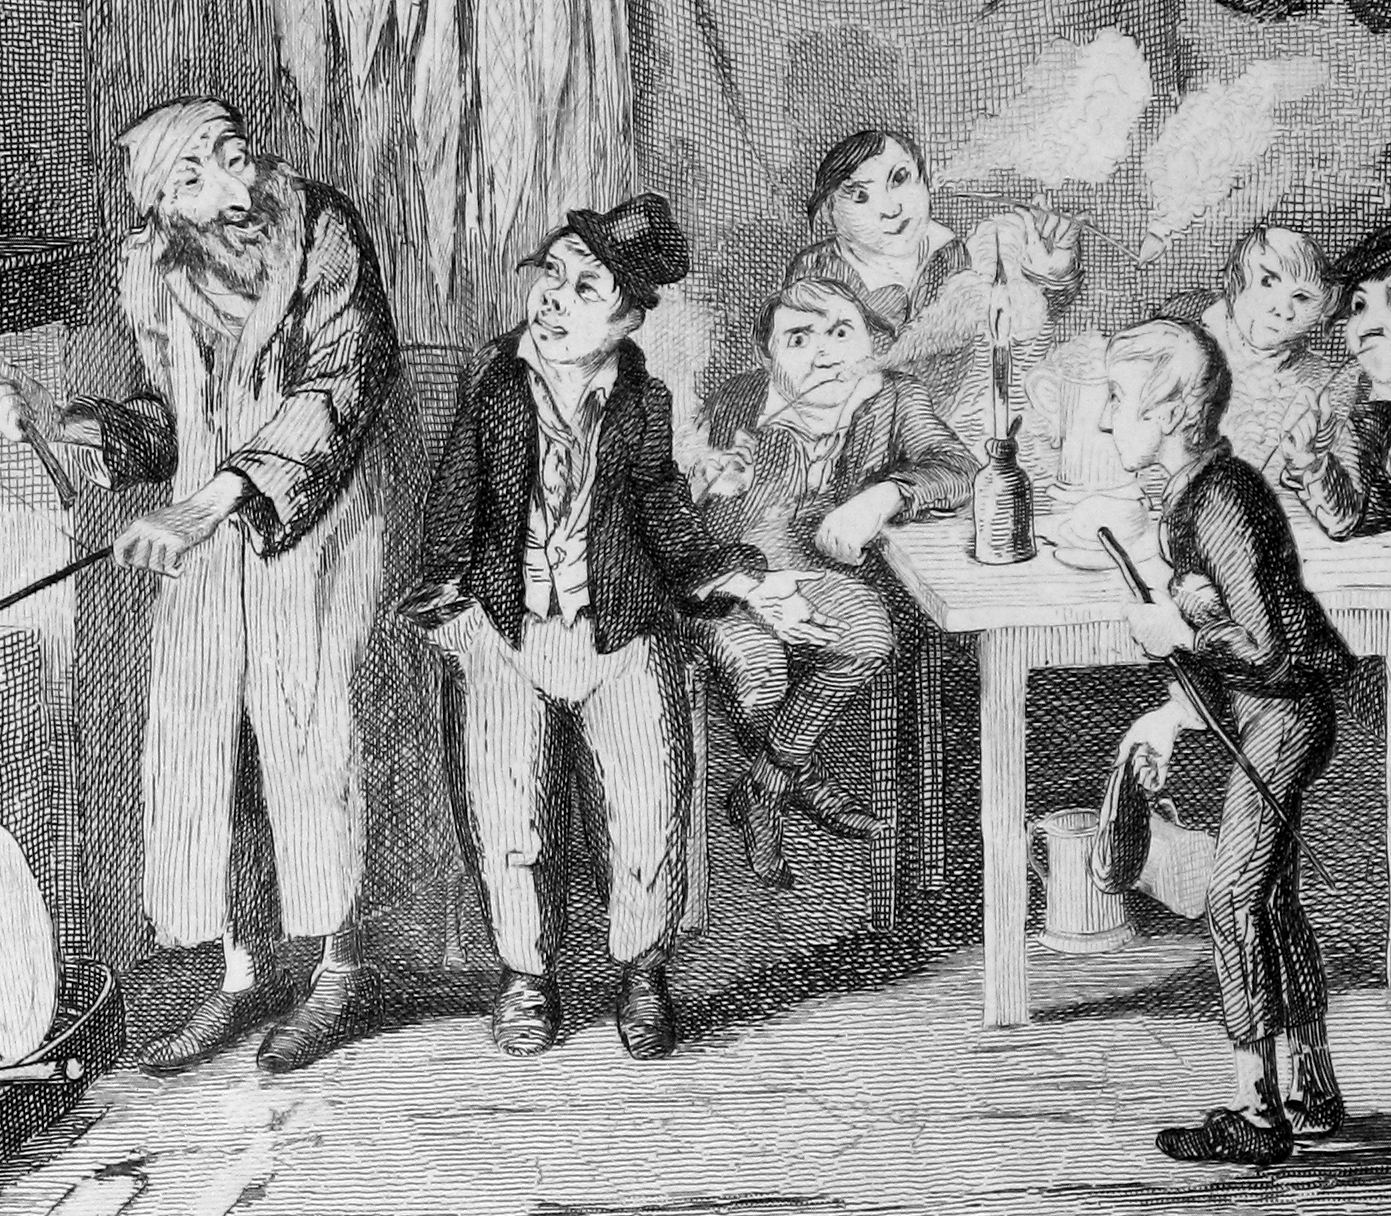 a description of poverty and class issues in the old world described in the novel oliver twist